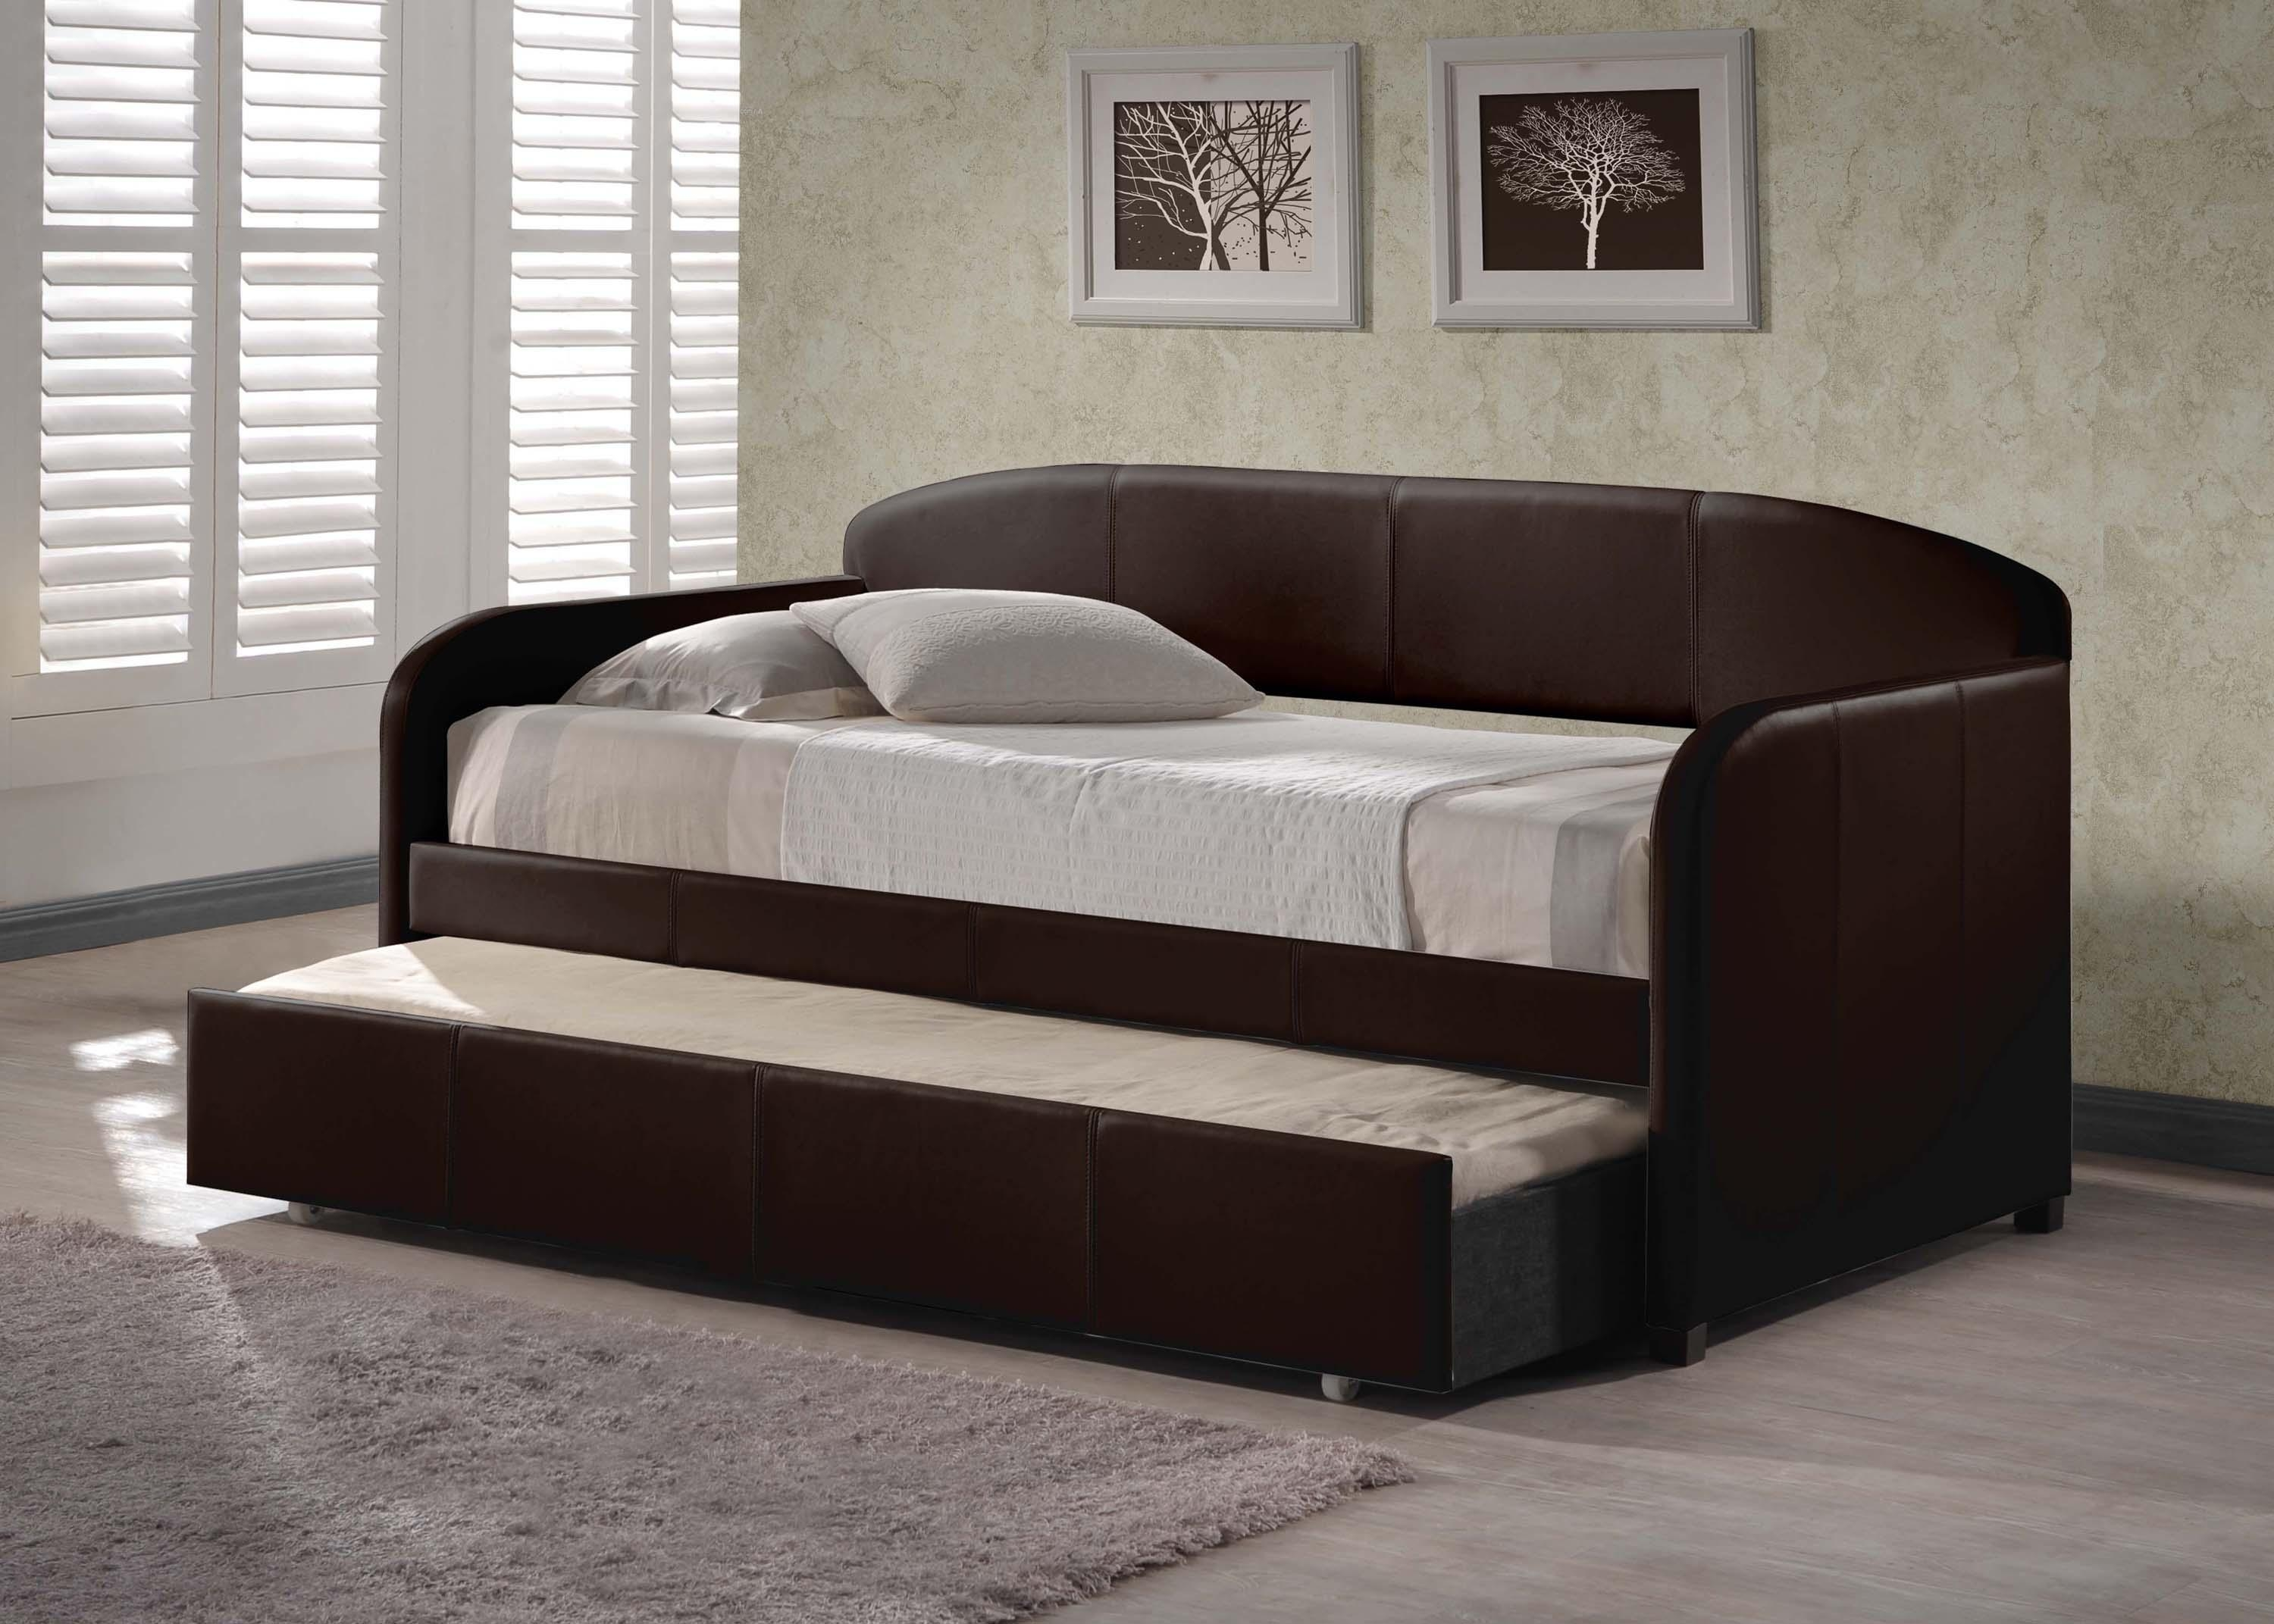 Sofa Daybed With Trundle | Best Sofas Ideas – Sofascouch With Sofas With Trundle (Image 7 of 20)